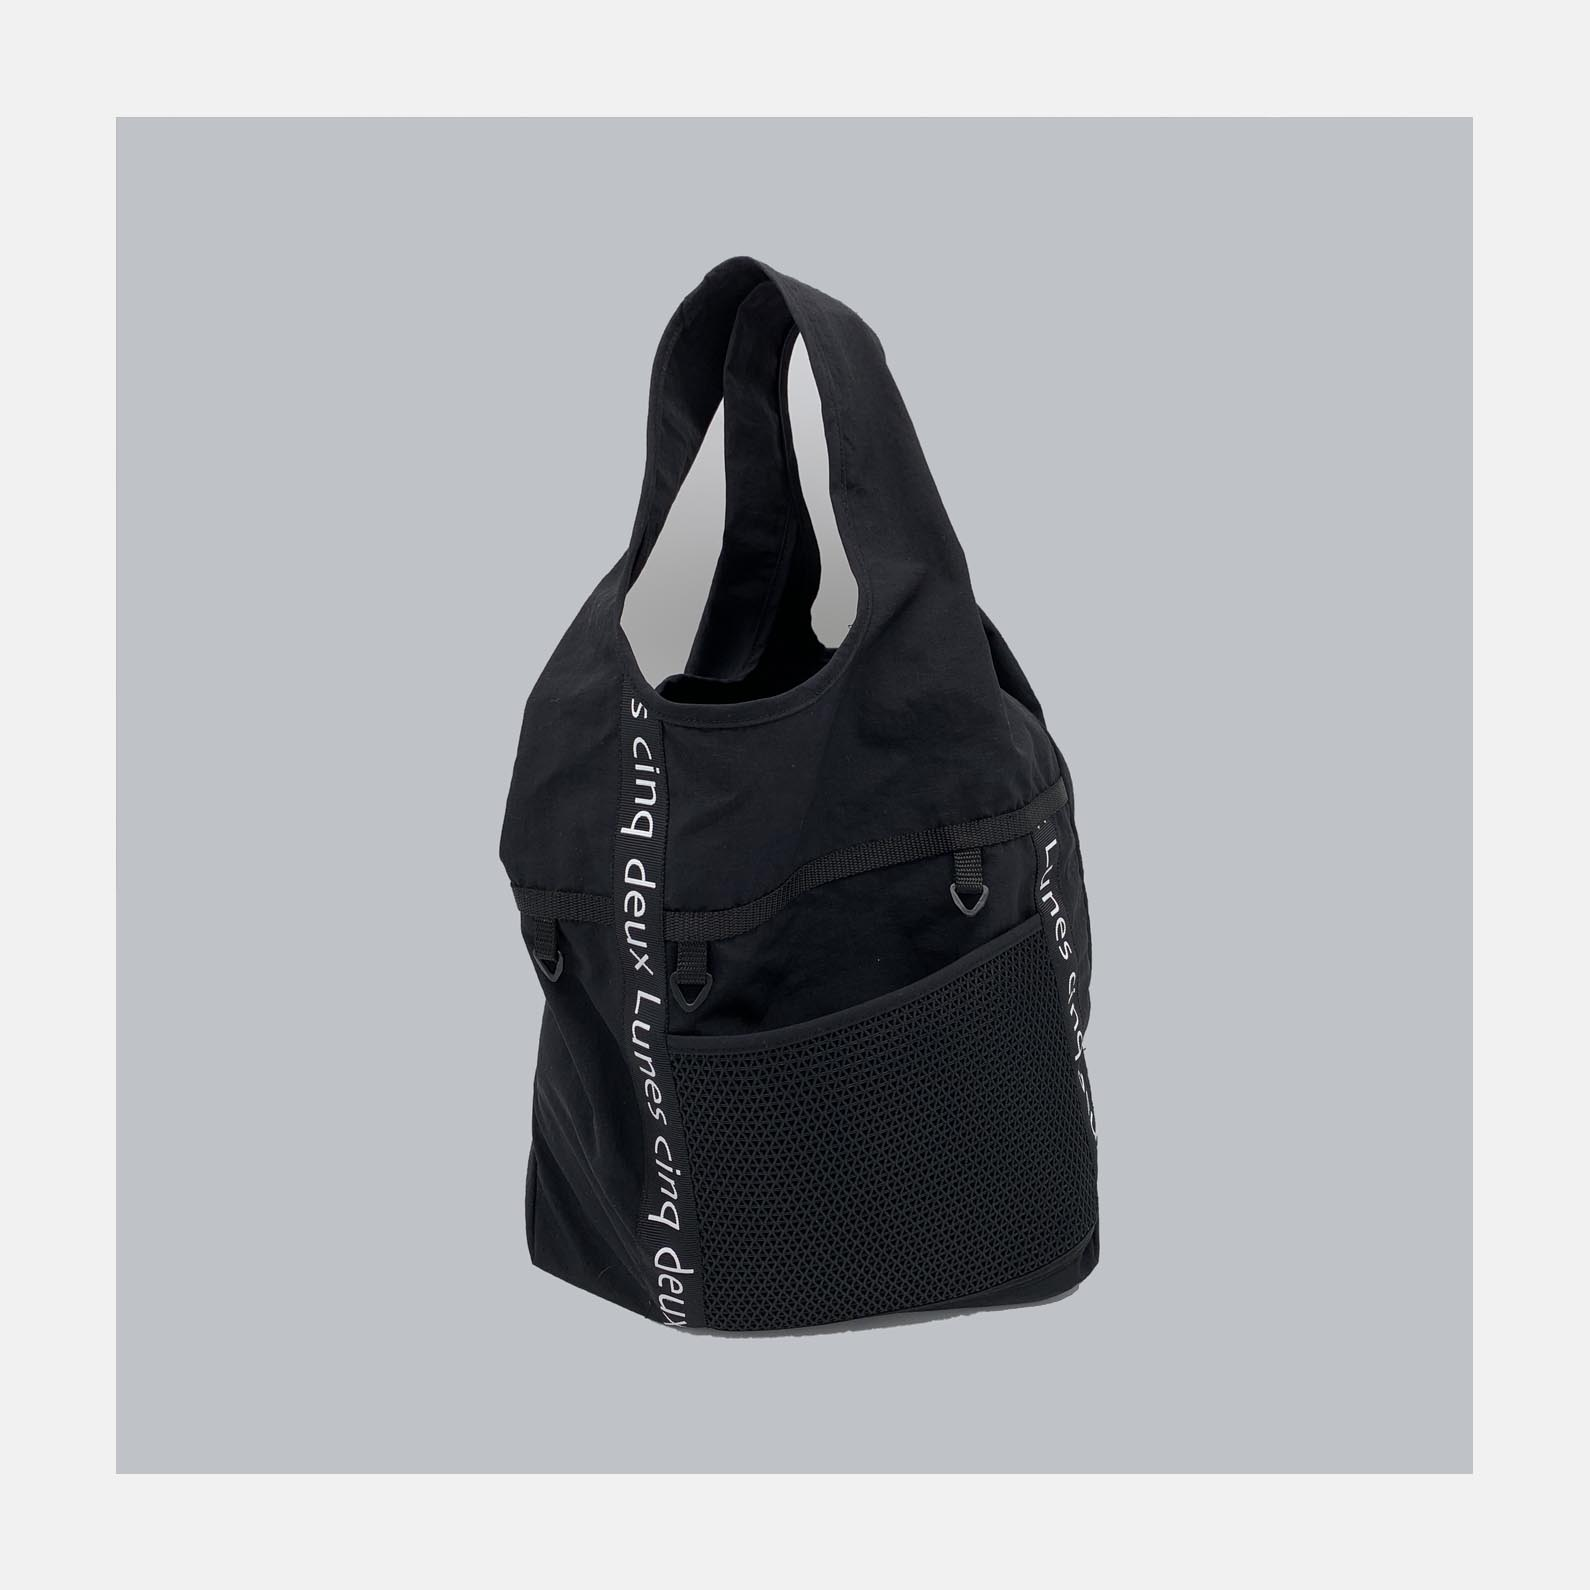 Nリップ logo tote bag<br>5000円~<br>( 1color )<br>(logo ribbon 7+2color options)